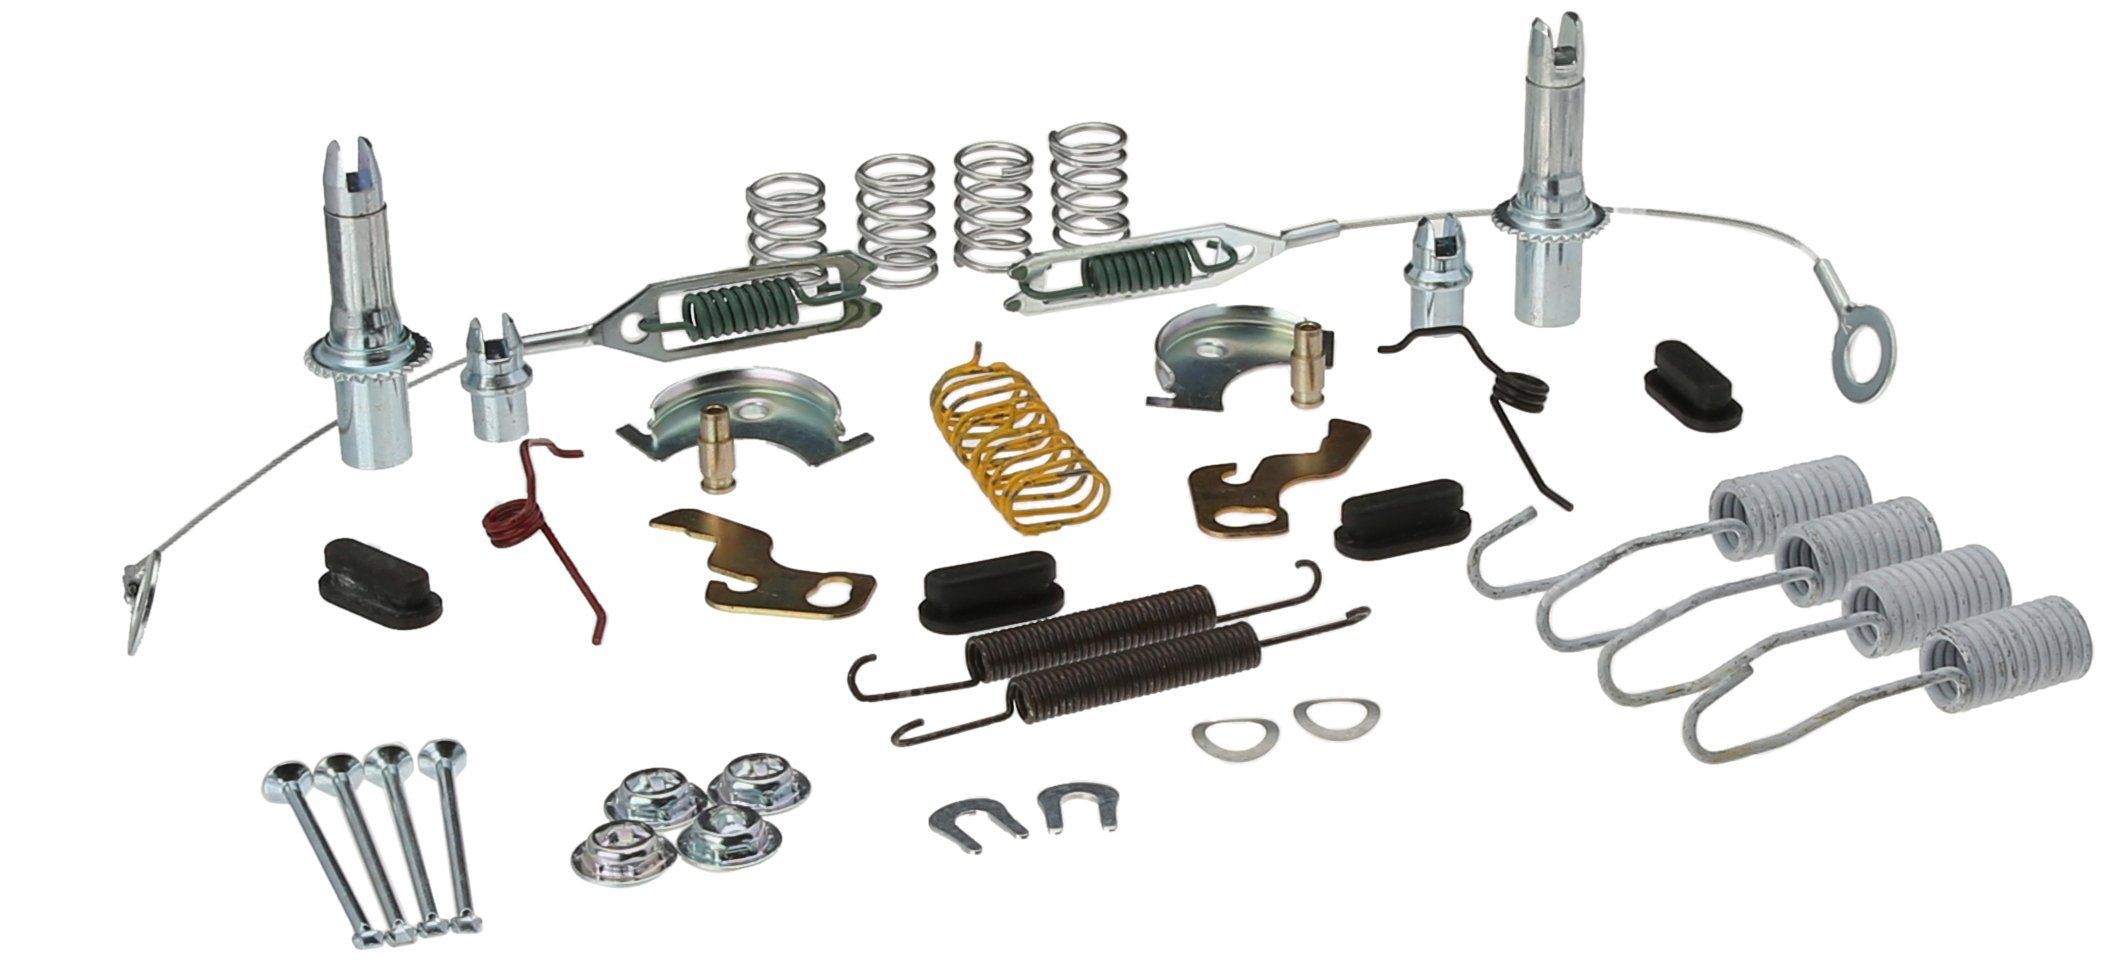 Best Rated In Automotive Replacement Brake Drum Hardware Kits Diagram Rear Brakes P Carlson H2309 Kit Product Image